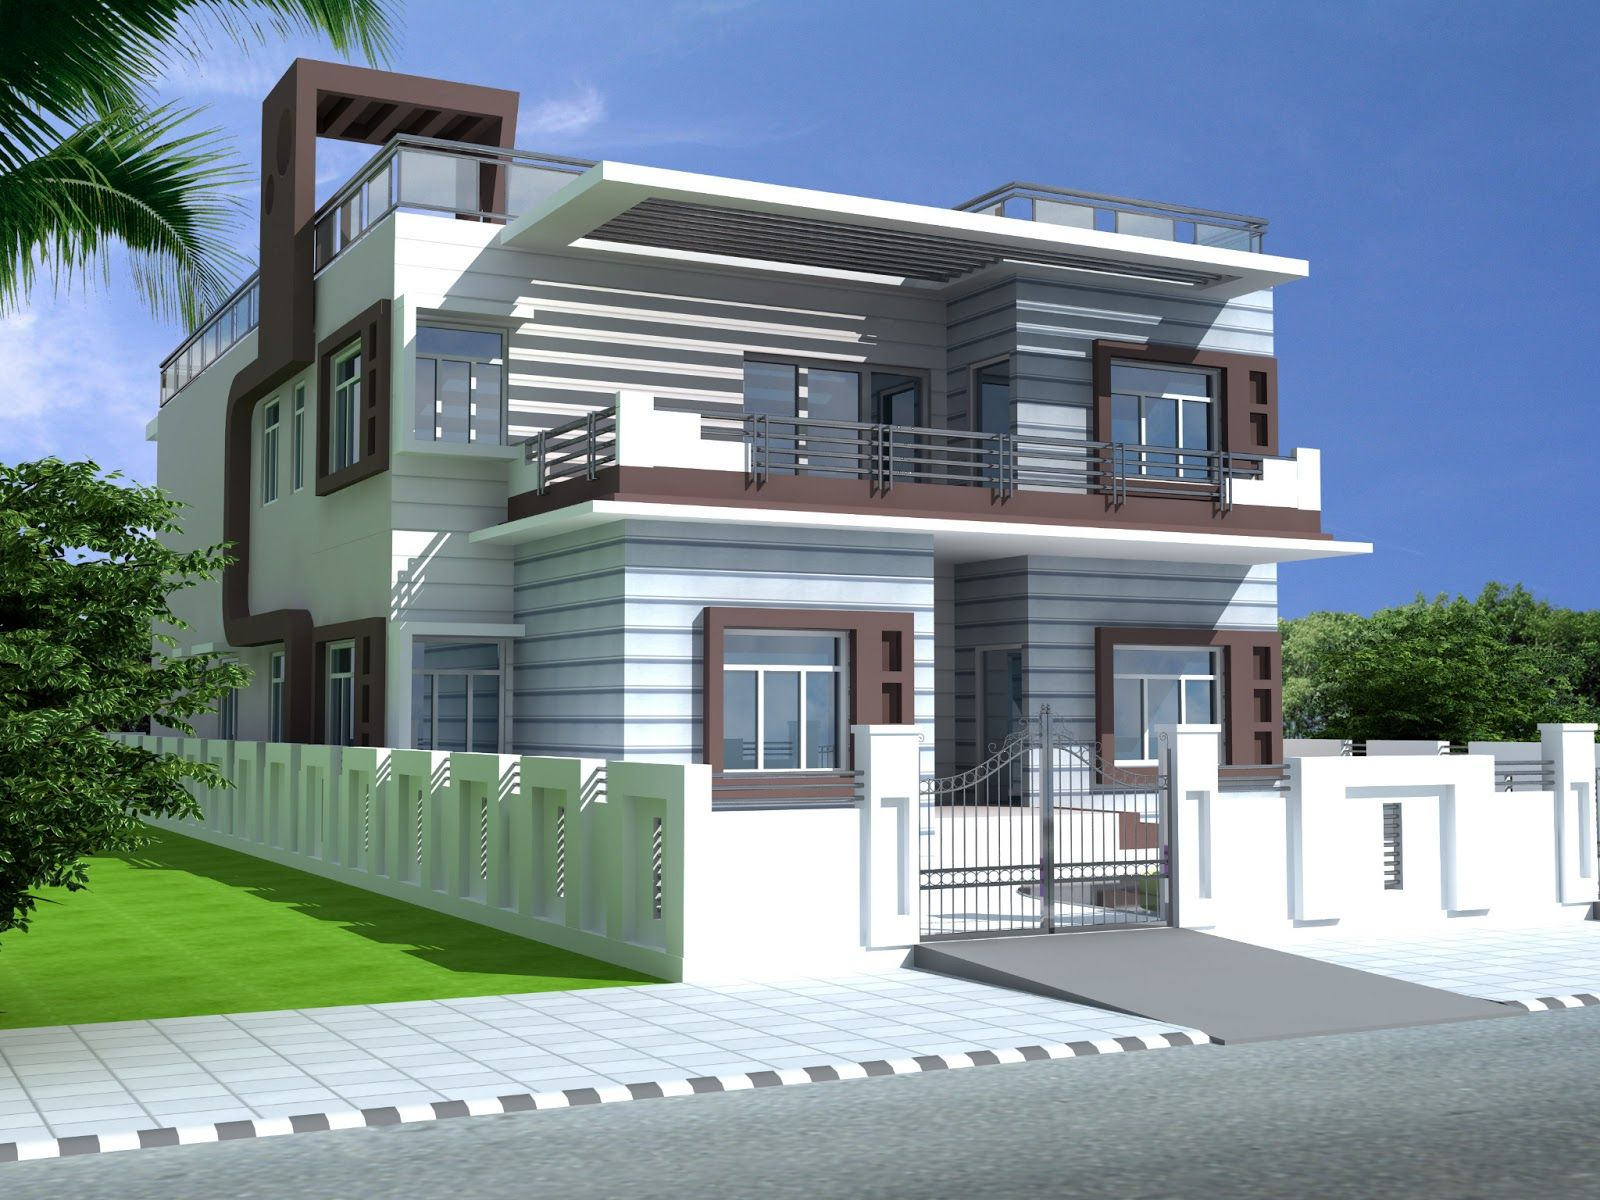 Front Elevation Designs For Duplex Houses : Bedrooms duplex house design in m